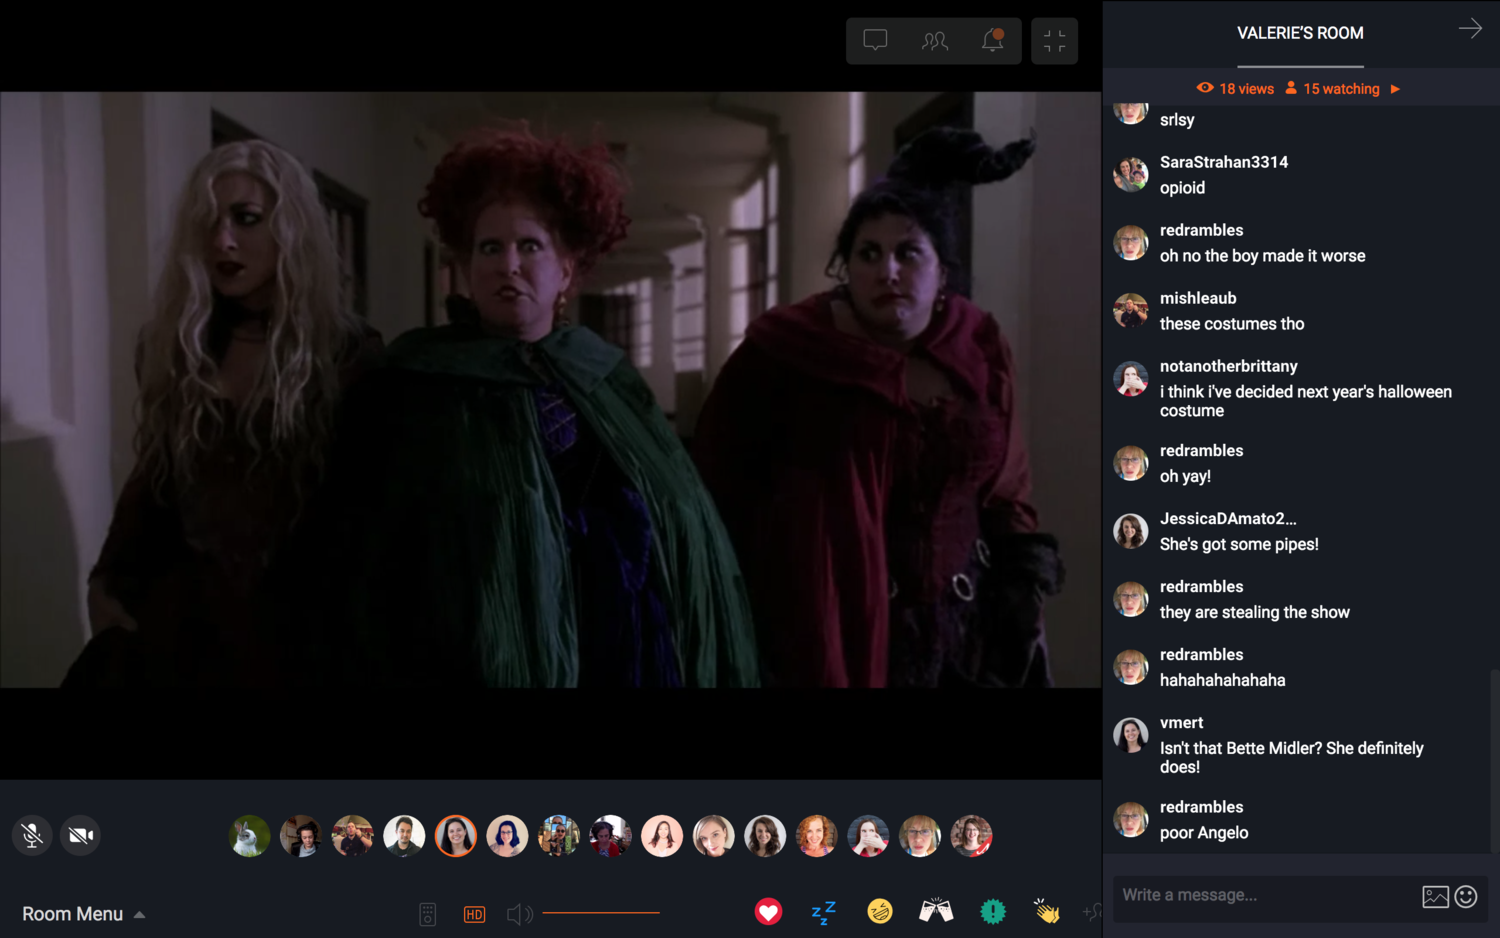 A Skillcrush movie night in which we broke with our musical tradition and watched Hocus Pocus in honor of Halloween.